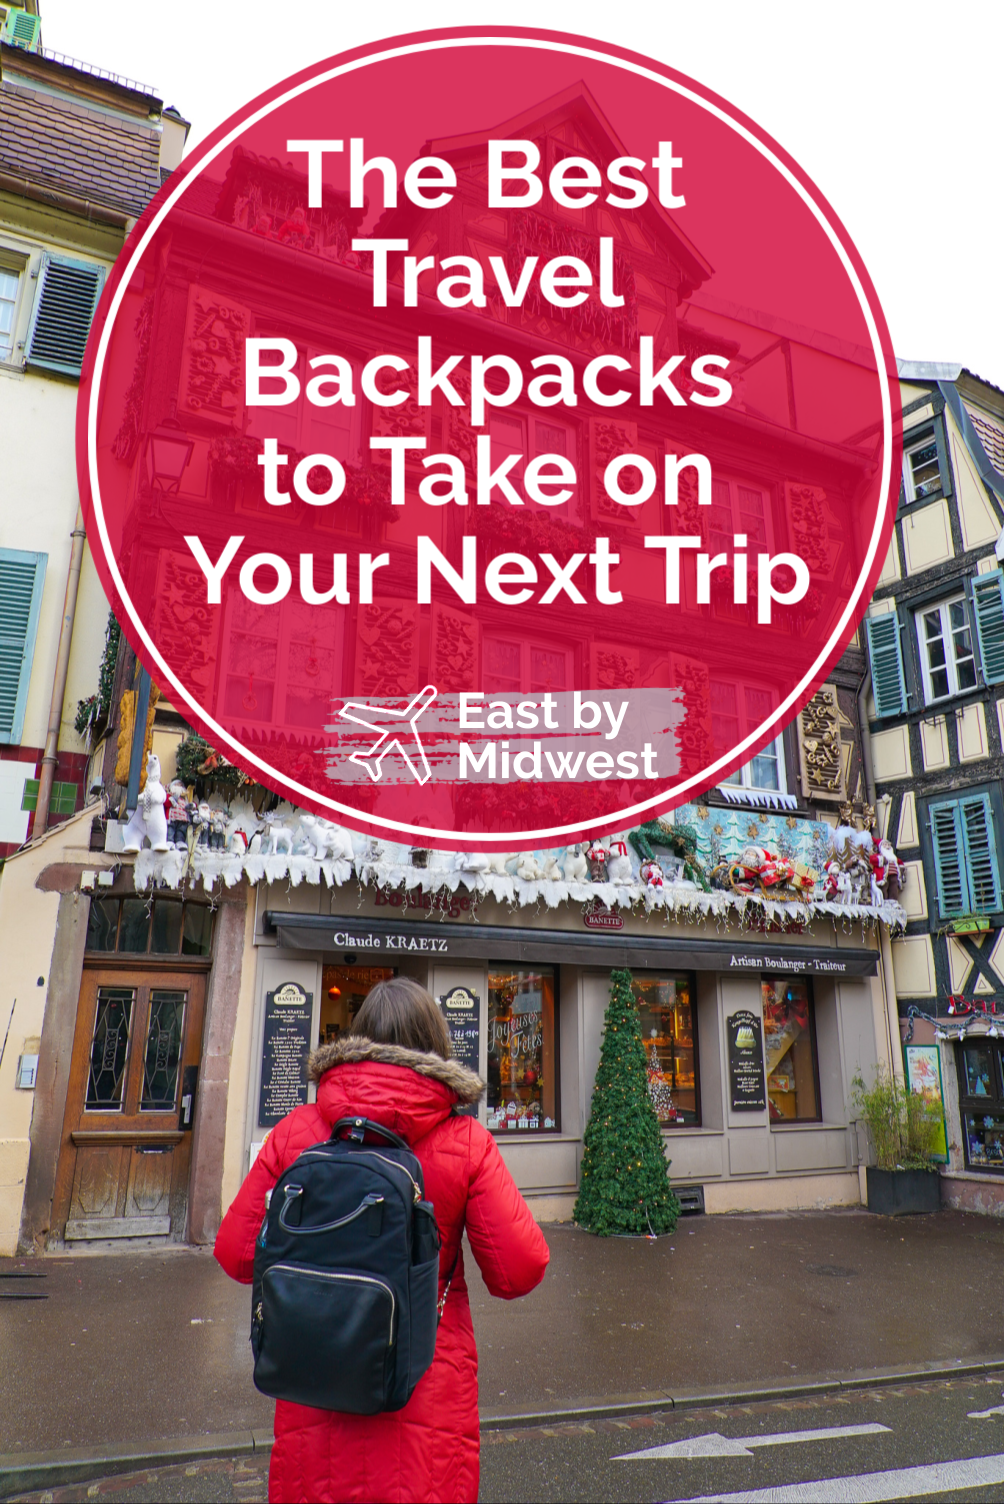 The Best Travel Backpacks to Take on Your Next Trip